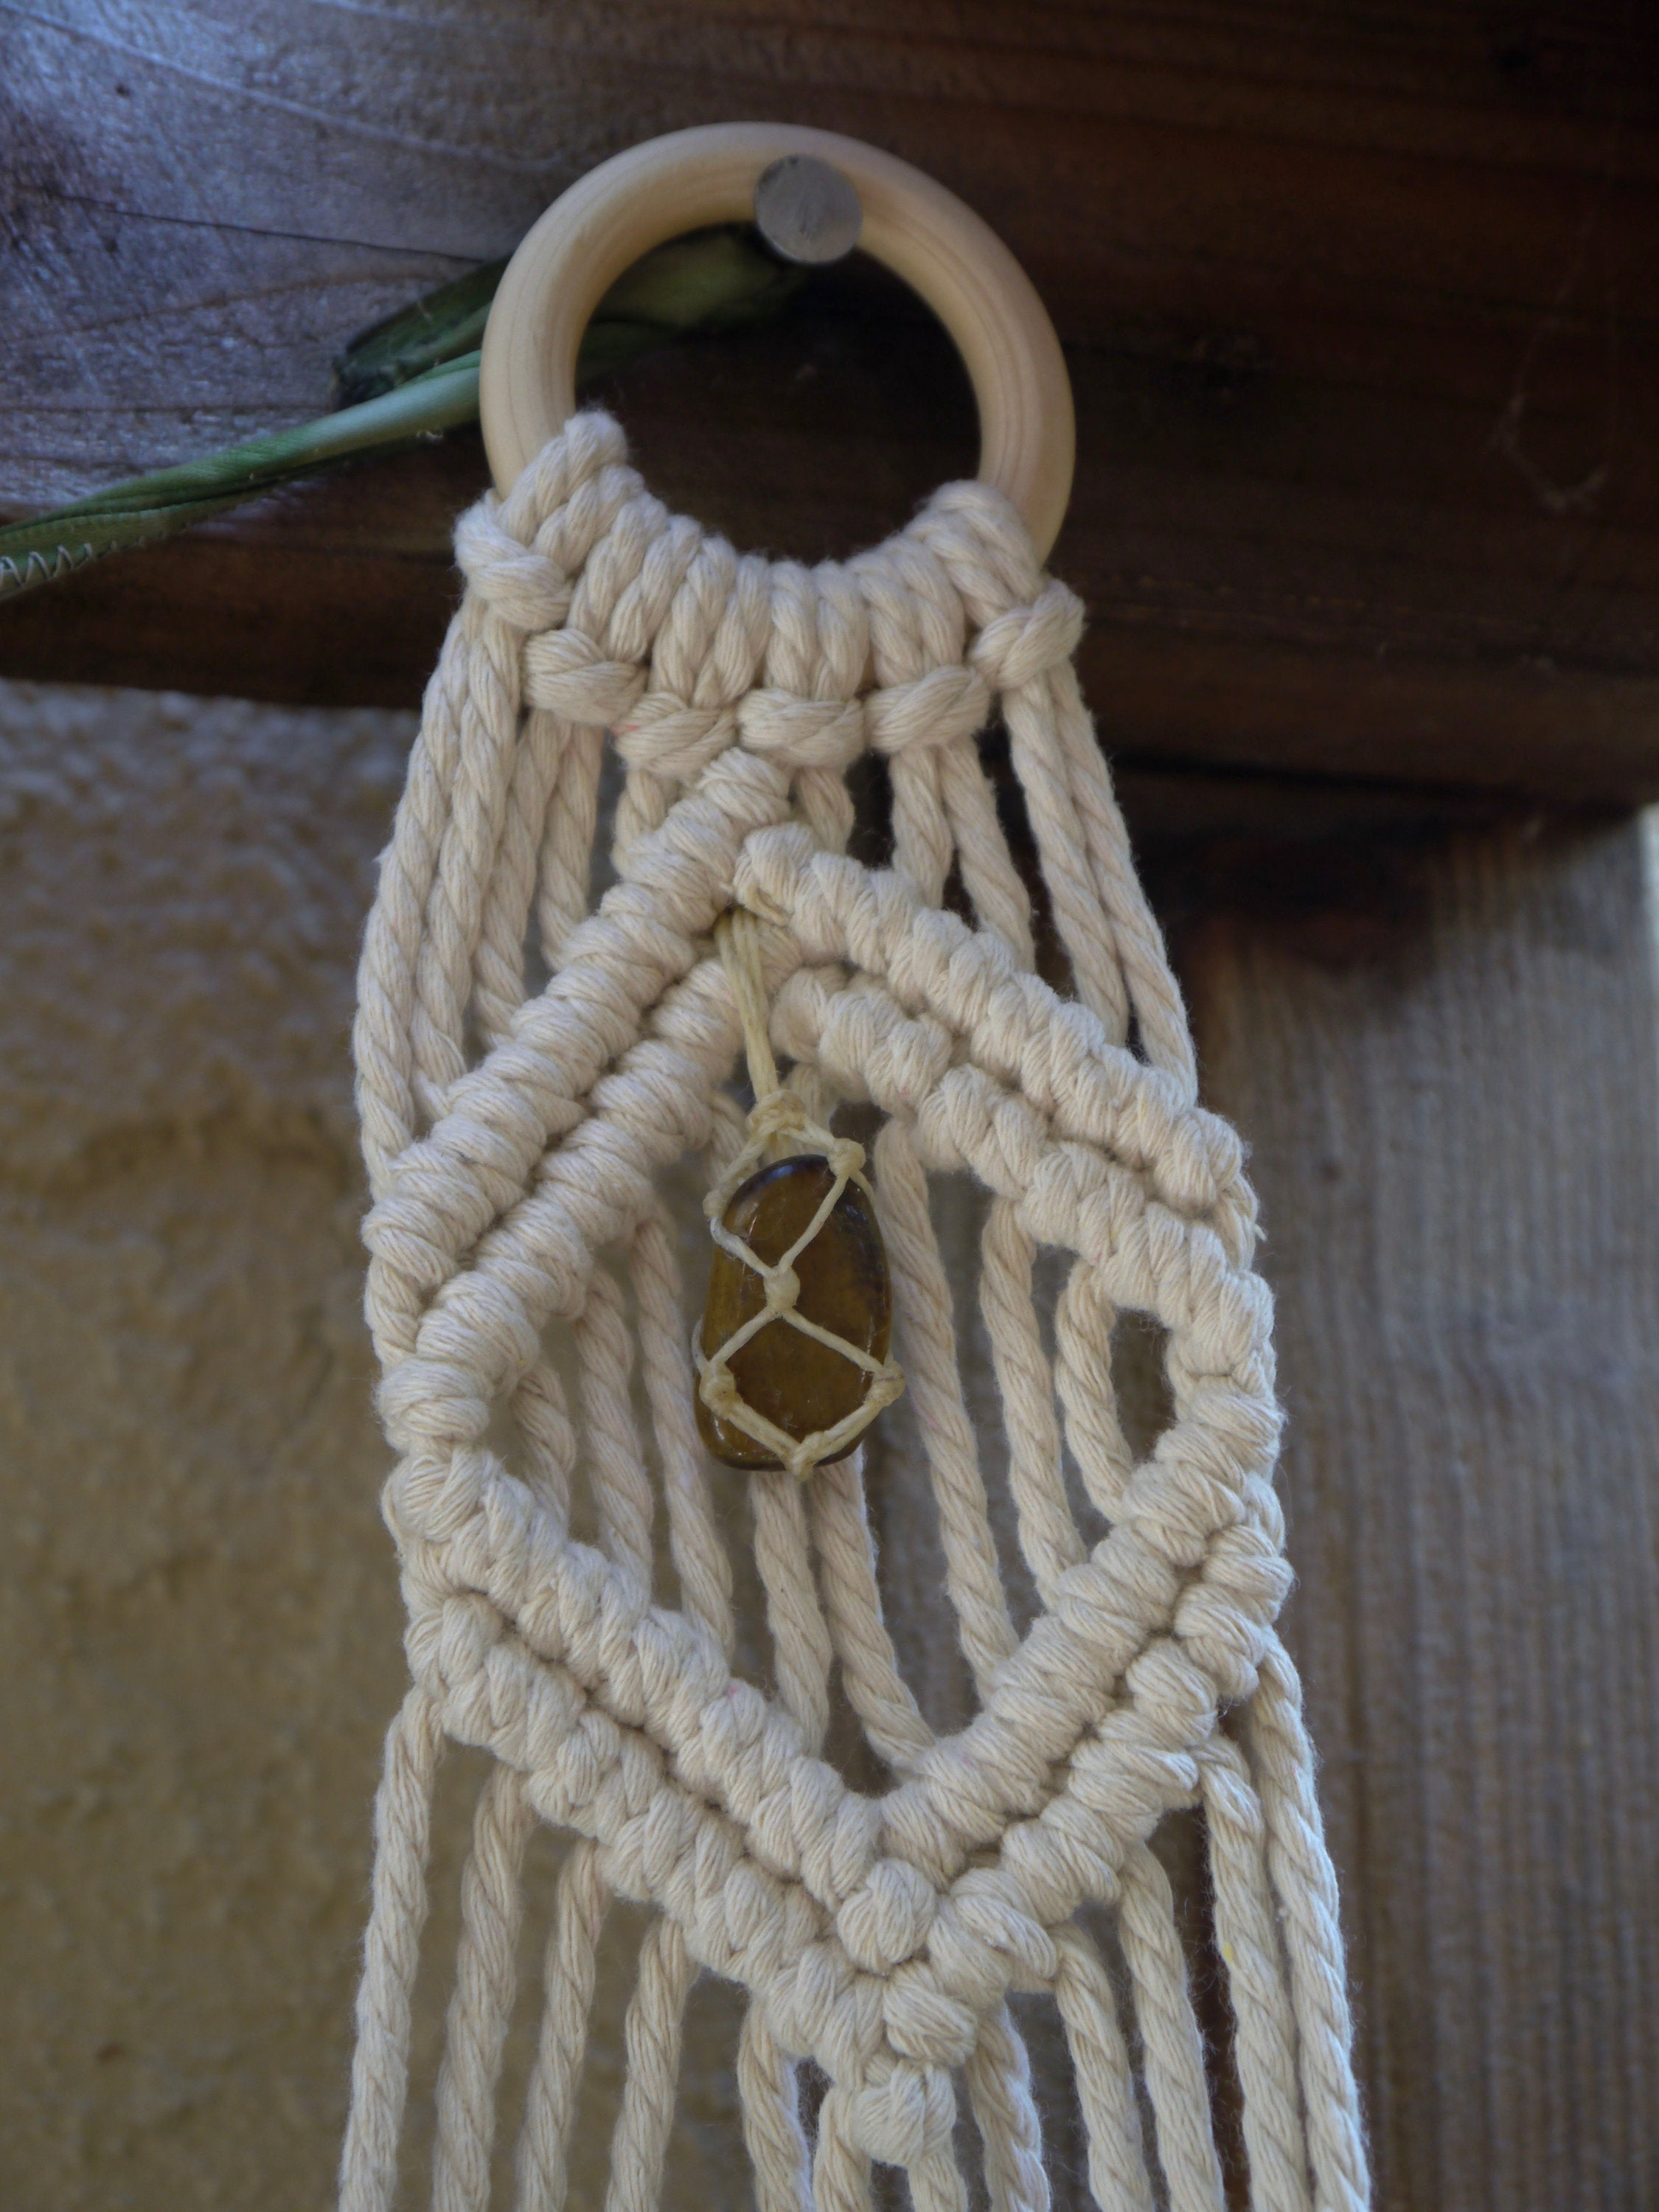 Relaxation Self-Awareness Double Macramé Hanger